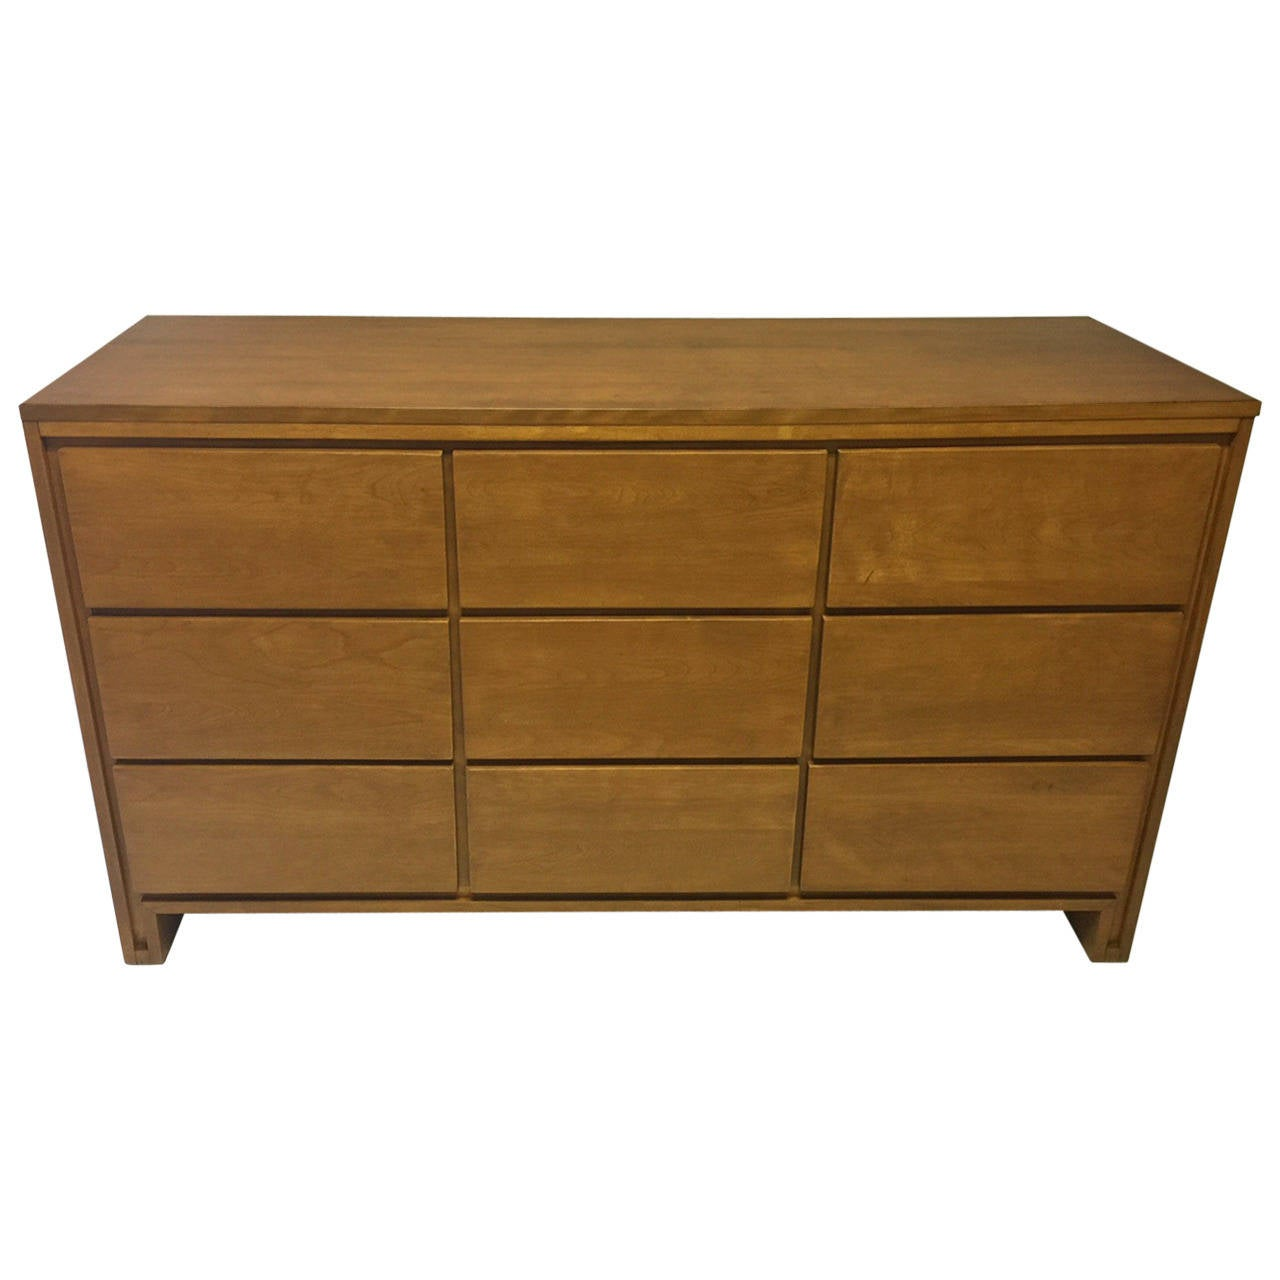 Russel Wright For Conant Ball American Modern Dresser 1